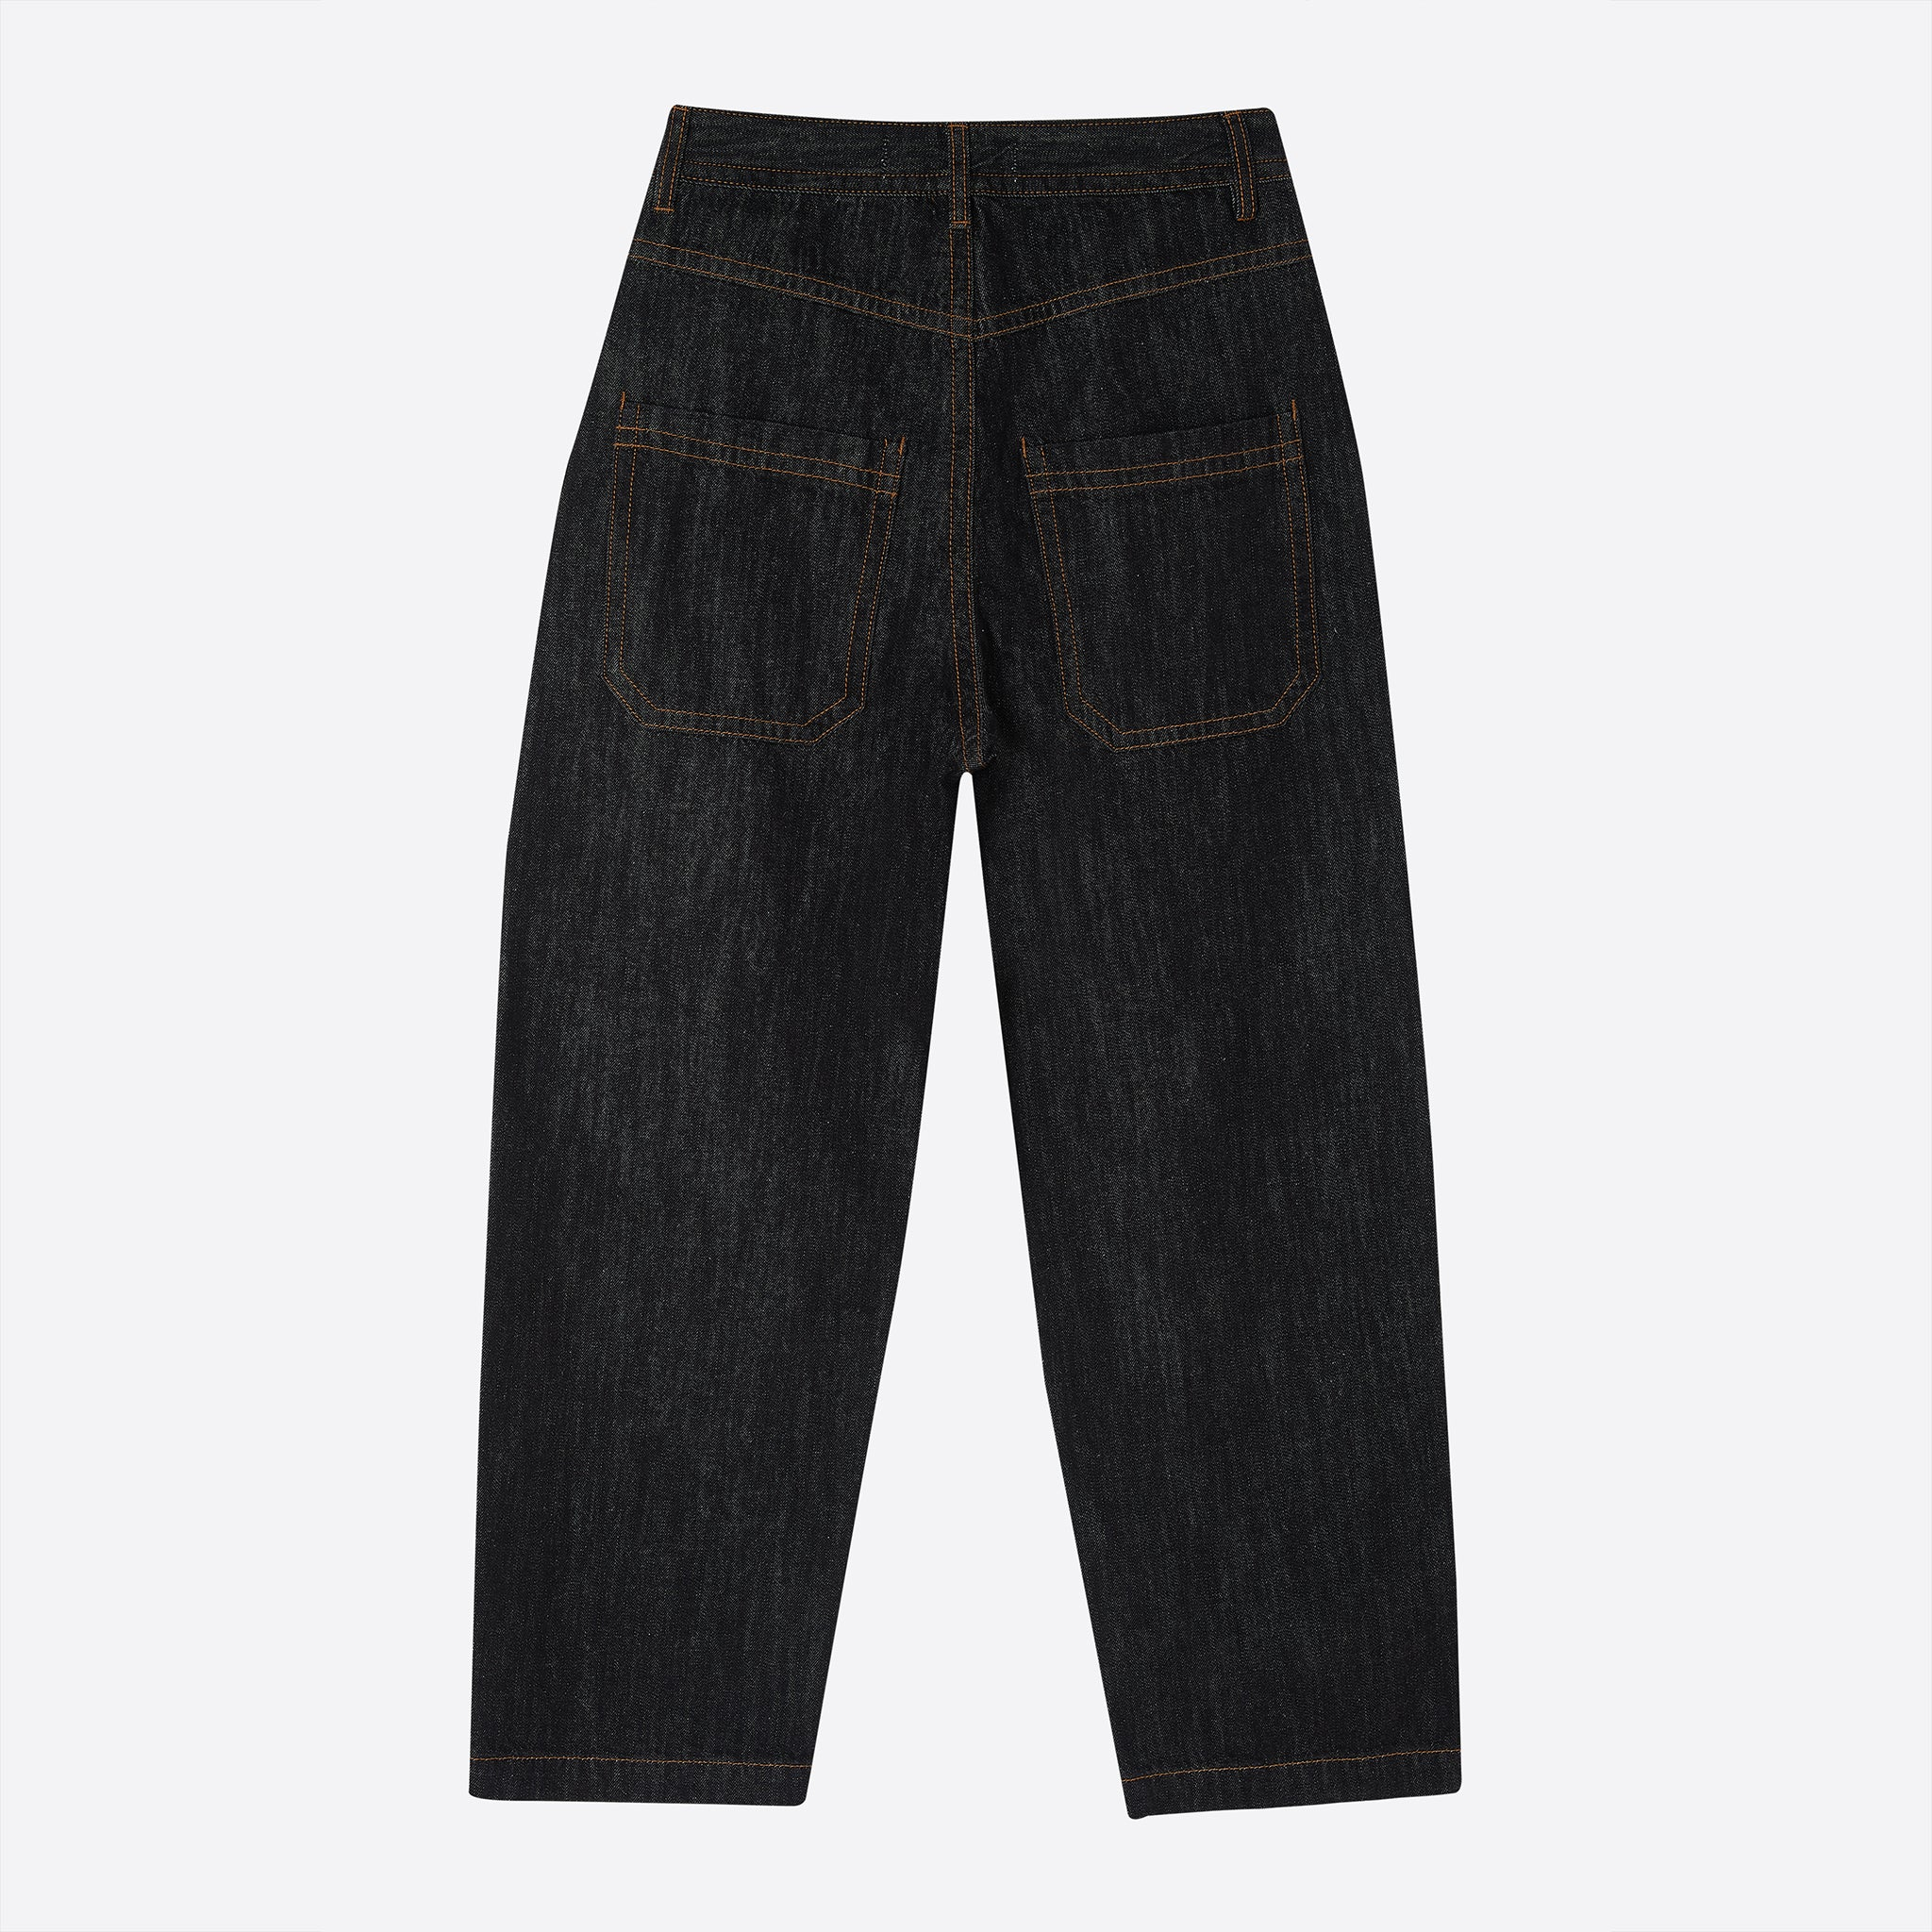 LF Markey Big Boy Jeans in Black Denim